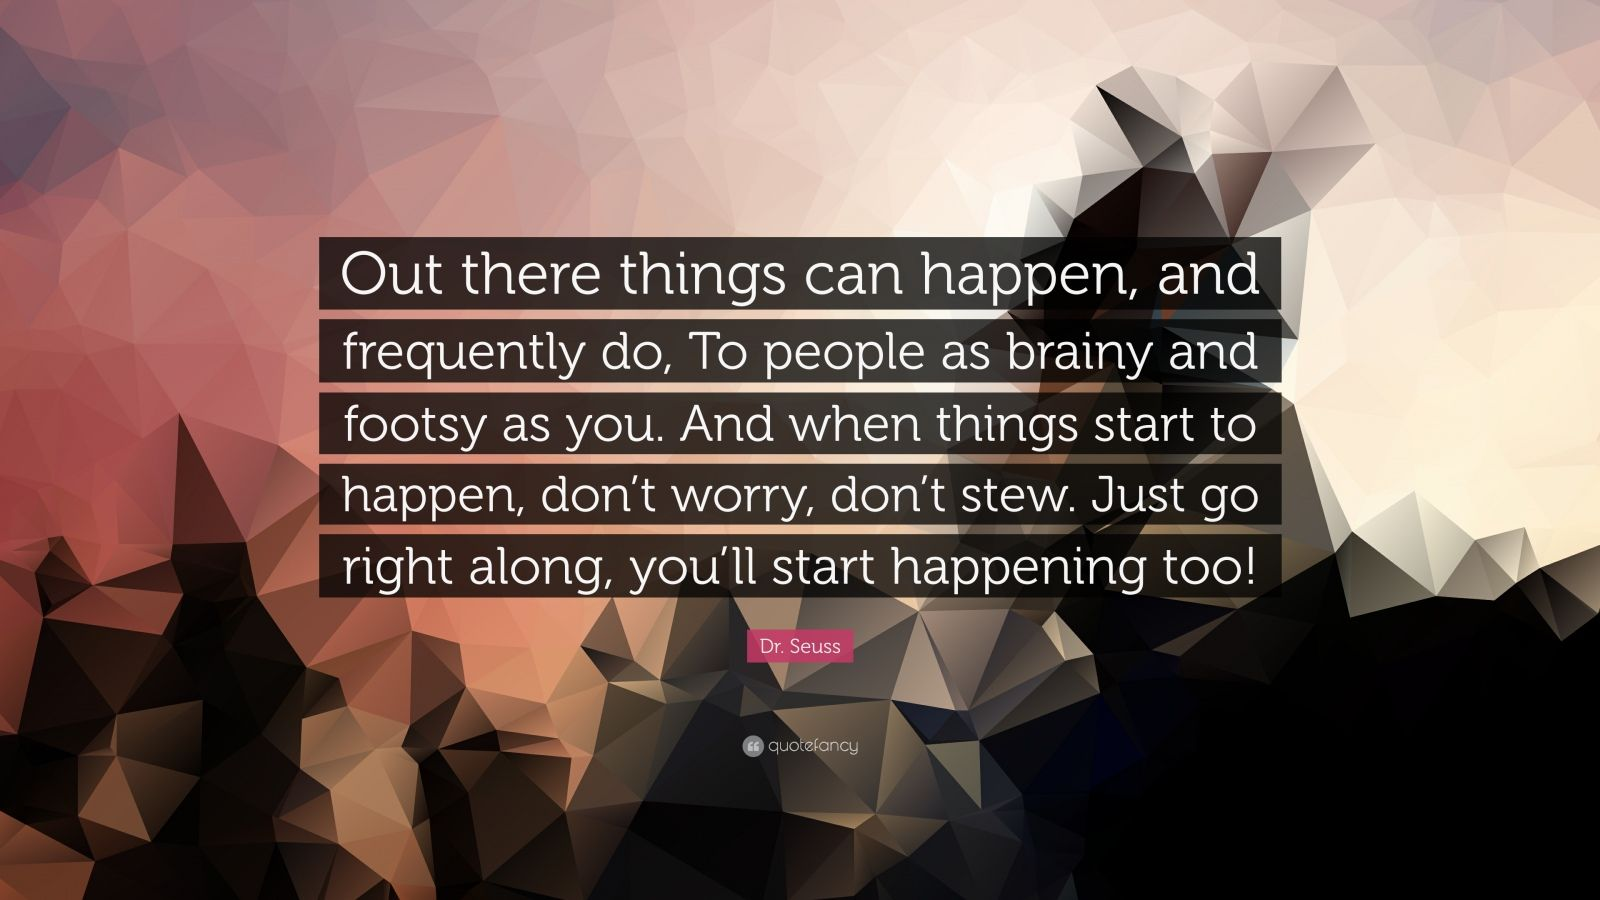 """Dr. Seuss Quote: """"Out there things can happen, and frequently do, To people as brainy and footsy as you. And when things start to happen, don't worry, don't stew. Just go right along, you'll start happening too!"""""""